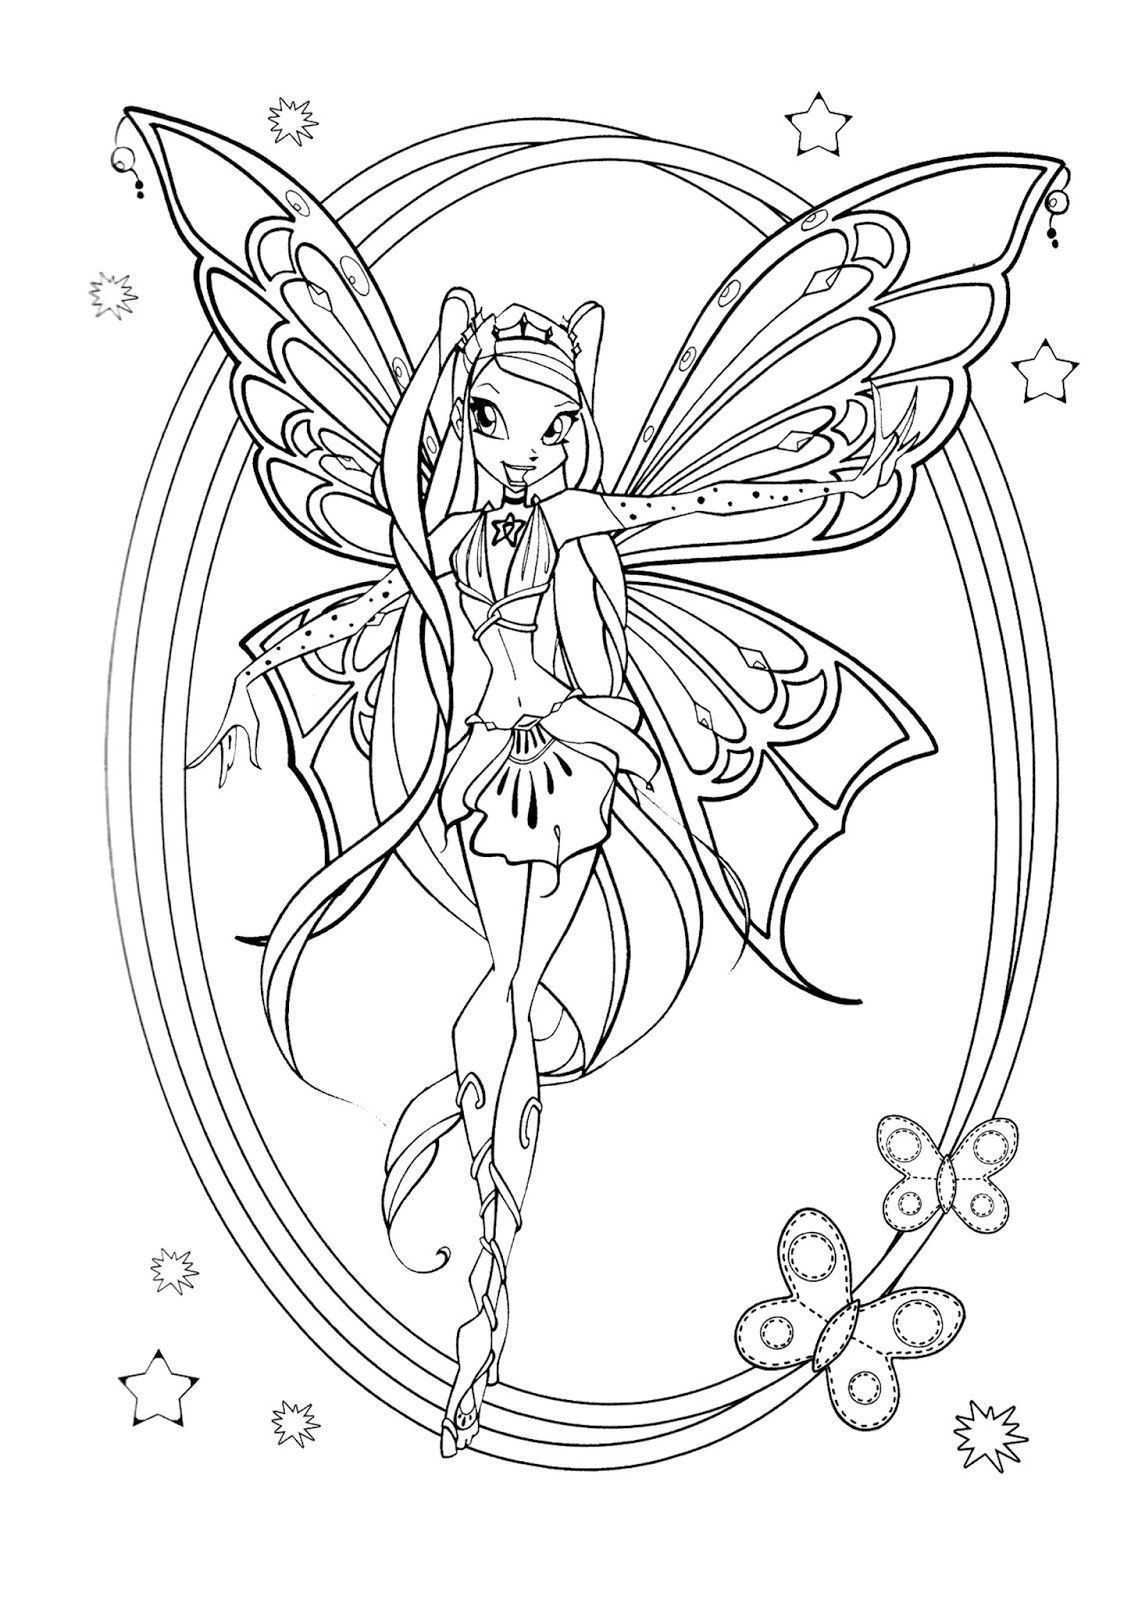 Winx Club Coloring Pages Best Of Awesome Musa Winx Coloring Pages Fansites Fairy Coloring Pages Coloring Pages Cartoon Coloring Pages